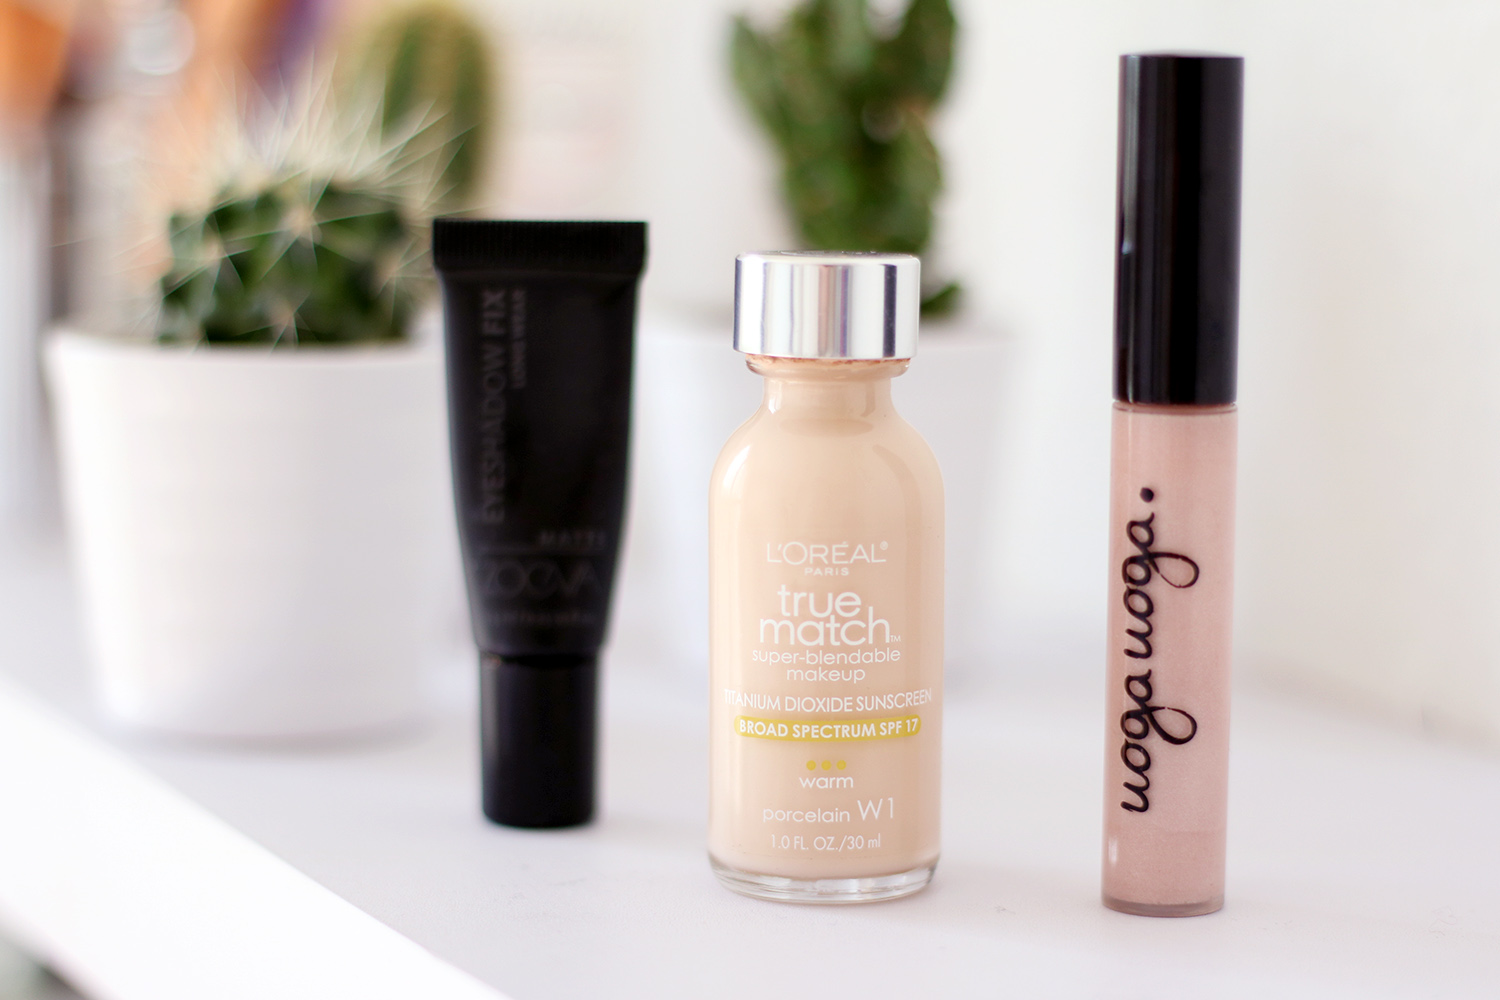 Lidschattenbase Zoeva Foundation Loreal True Match 20 Min Tagesmakeup Schminktipps Video Youtube Rote Haare Beauty Blog Mondays Makeup Helle Haut Advanceyourstyle Berlin Influencer